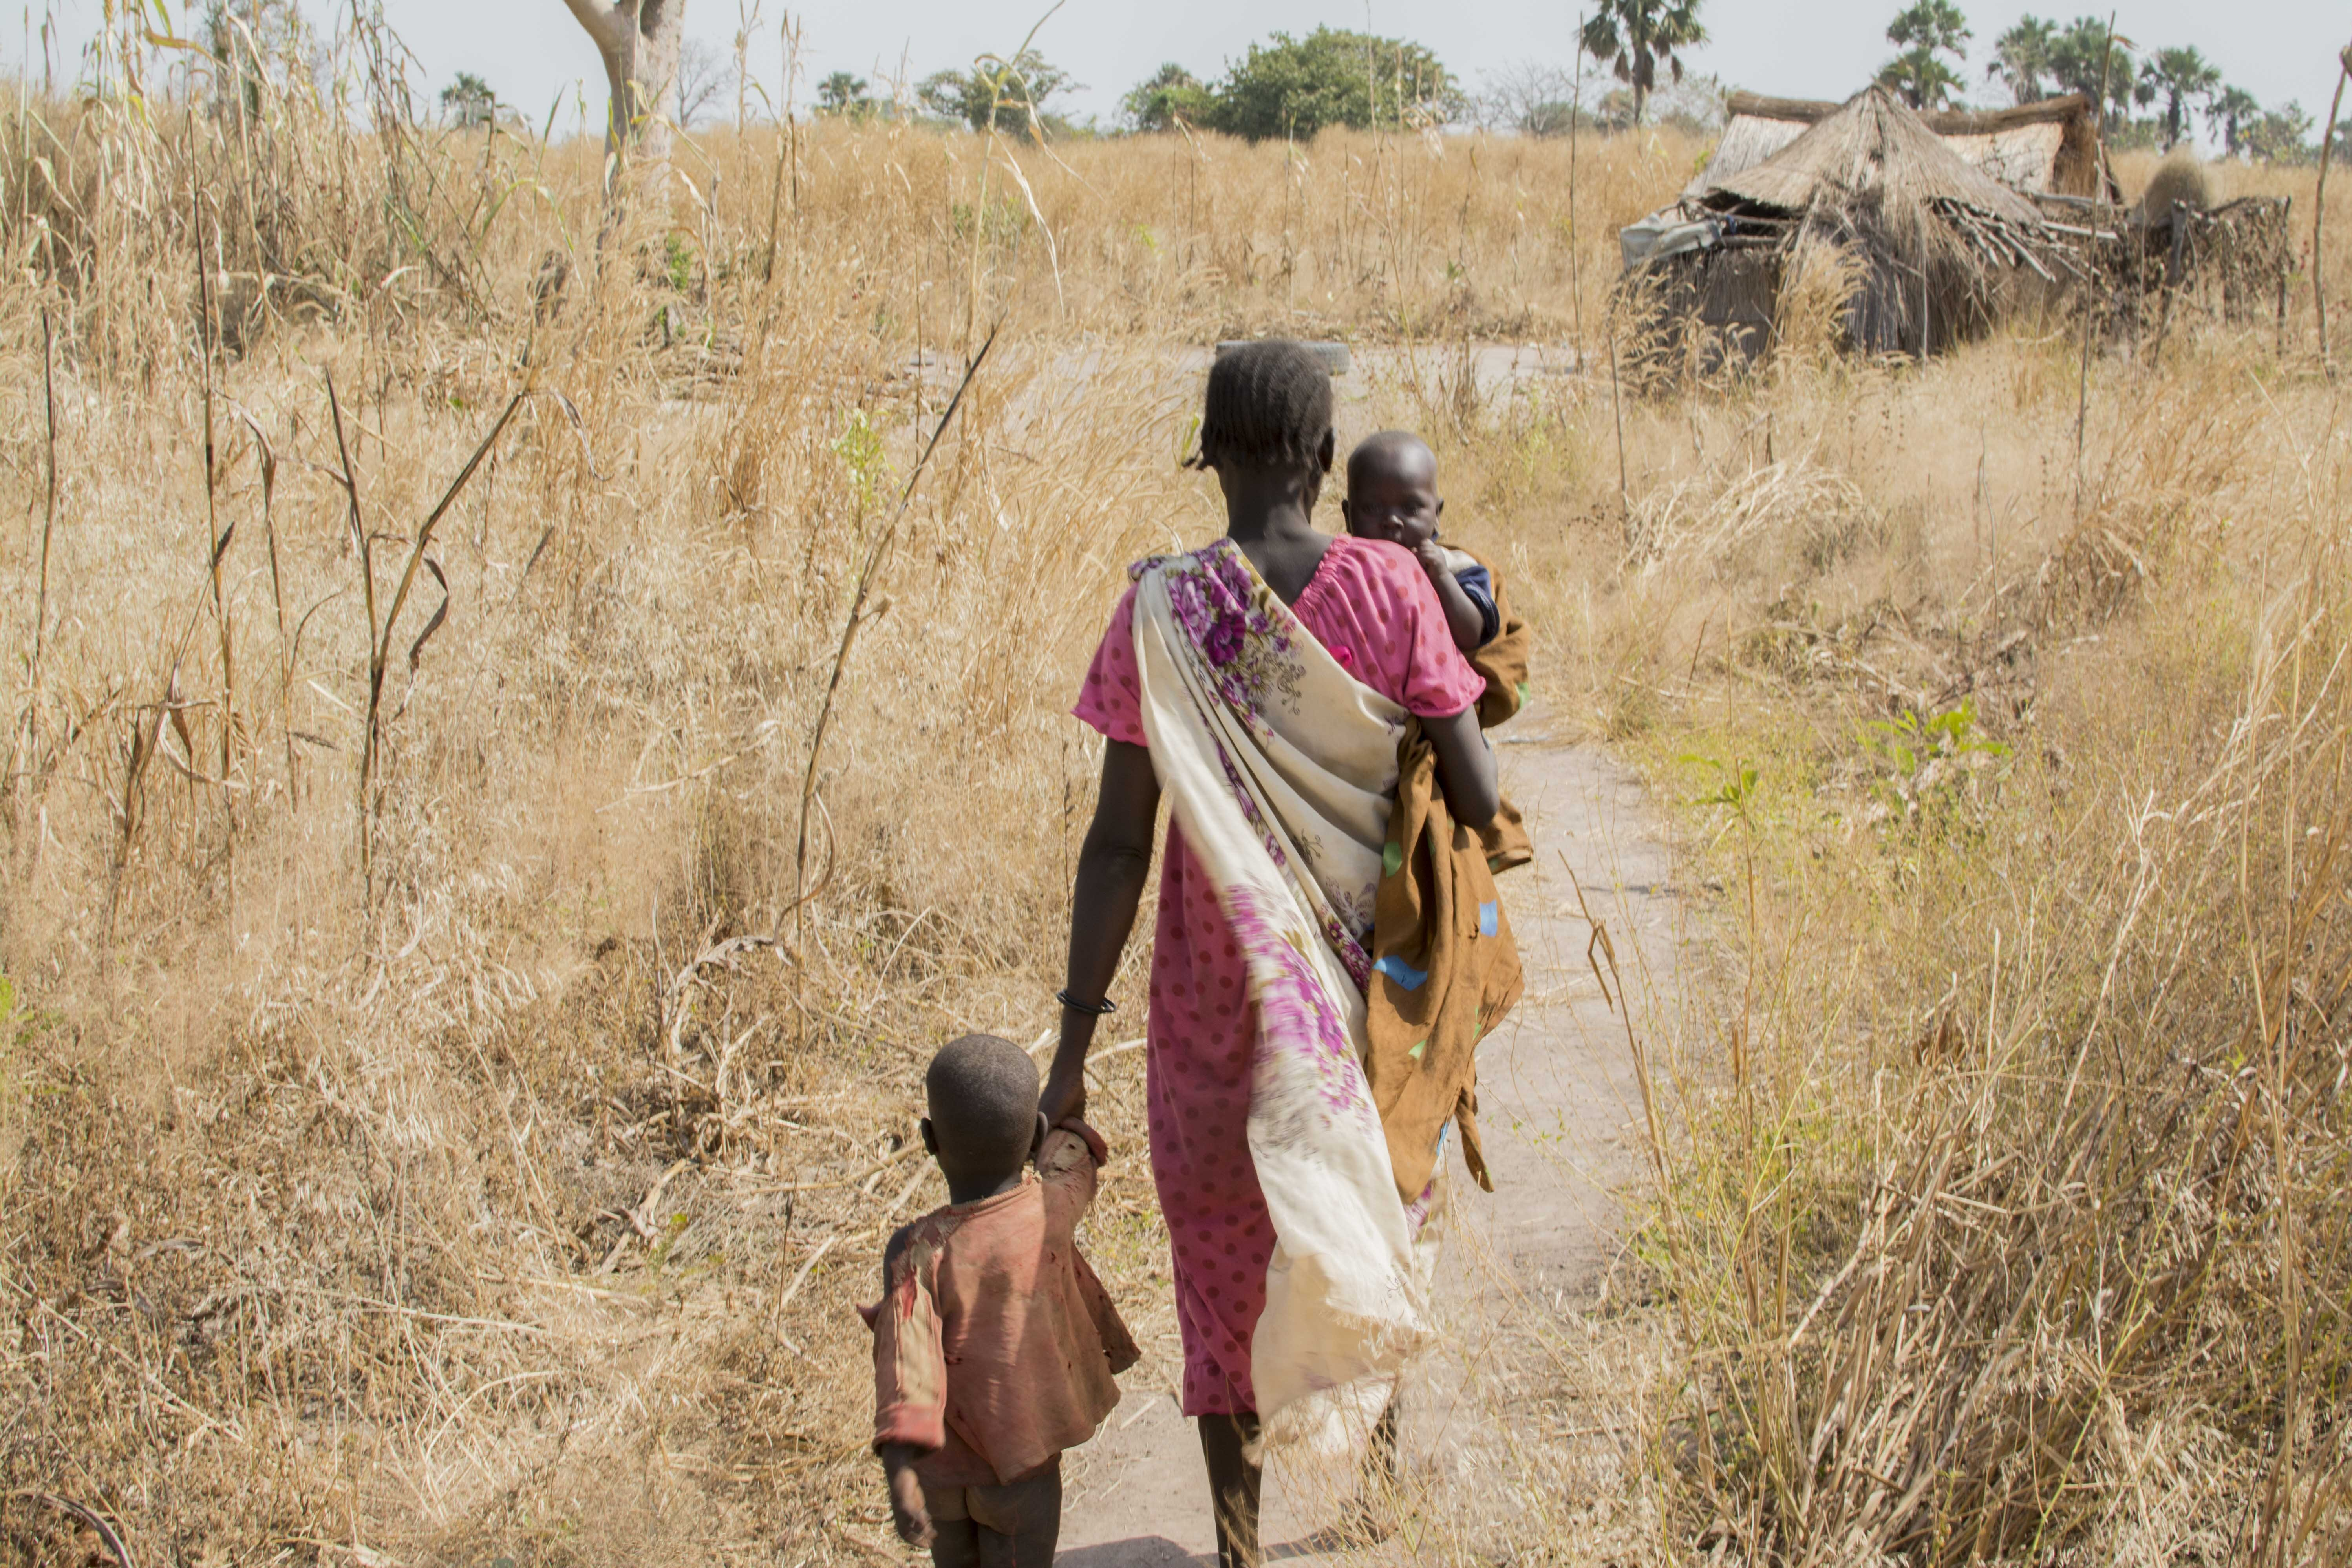 A women with two kids on her way home